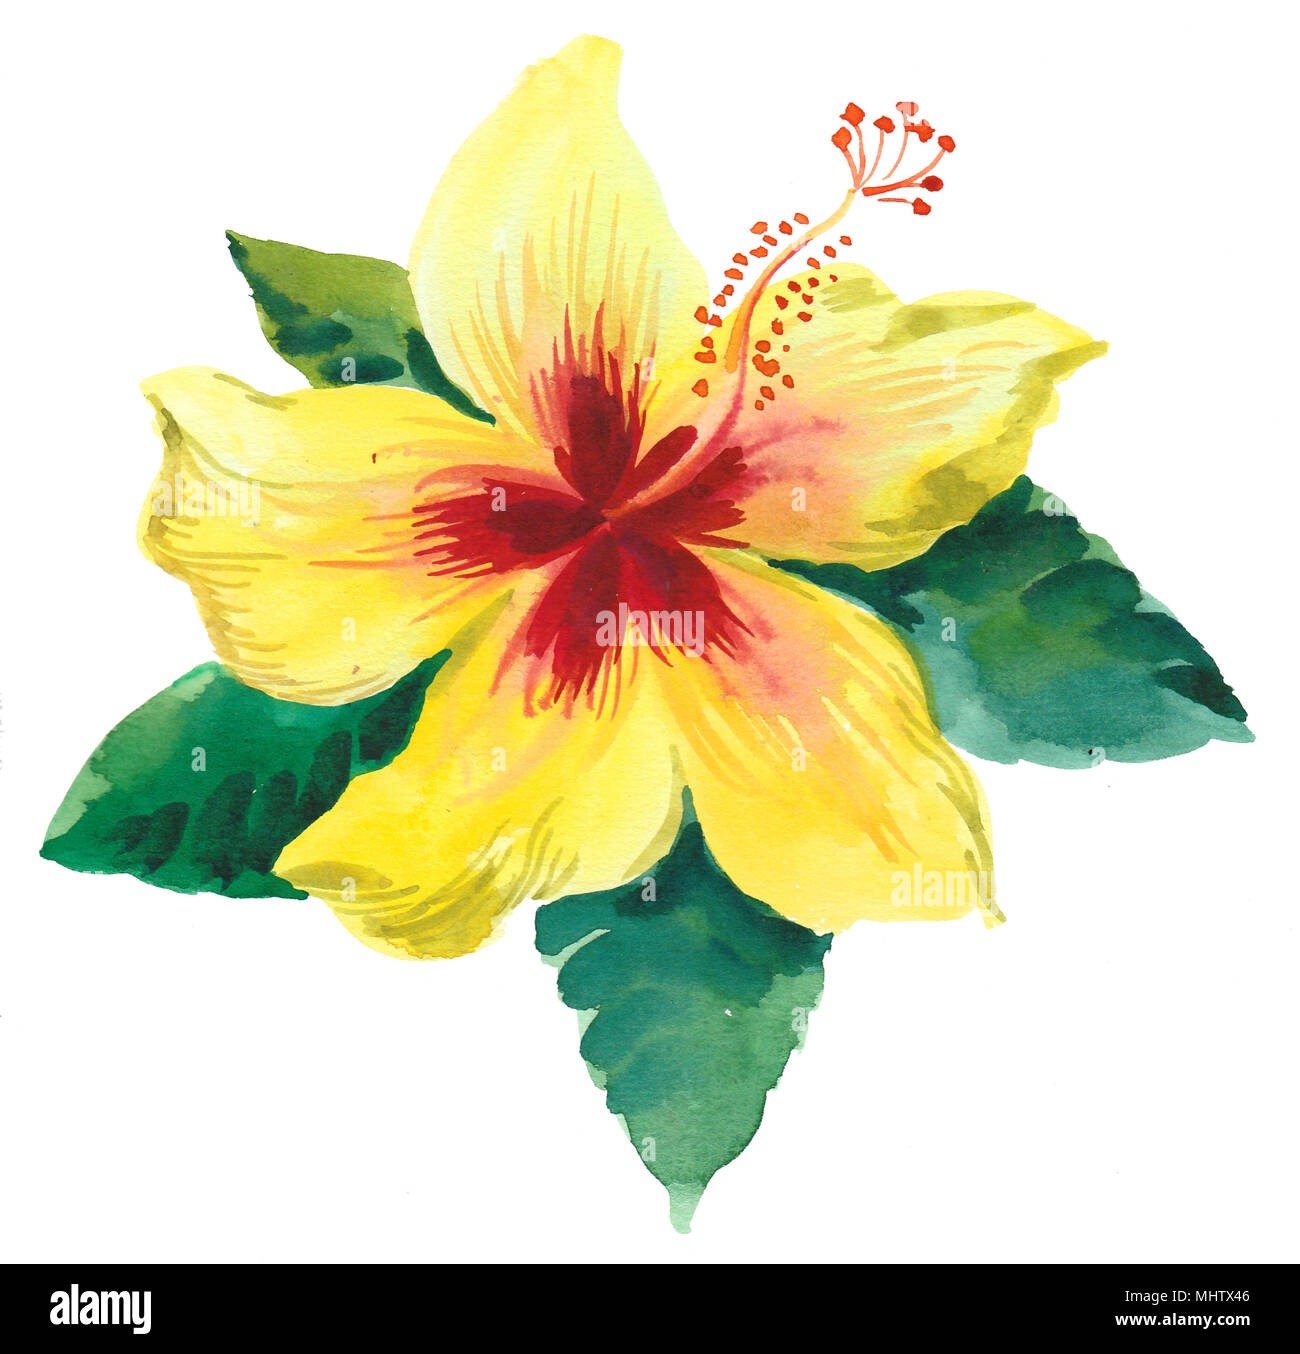 Yellow Hibiscus Flower Watercolor Painting Stock Photo 183100182